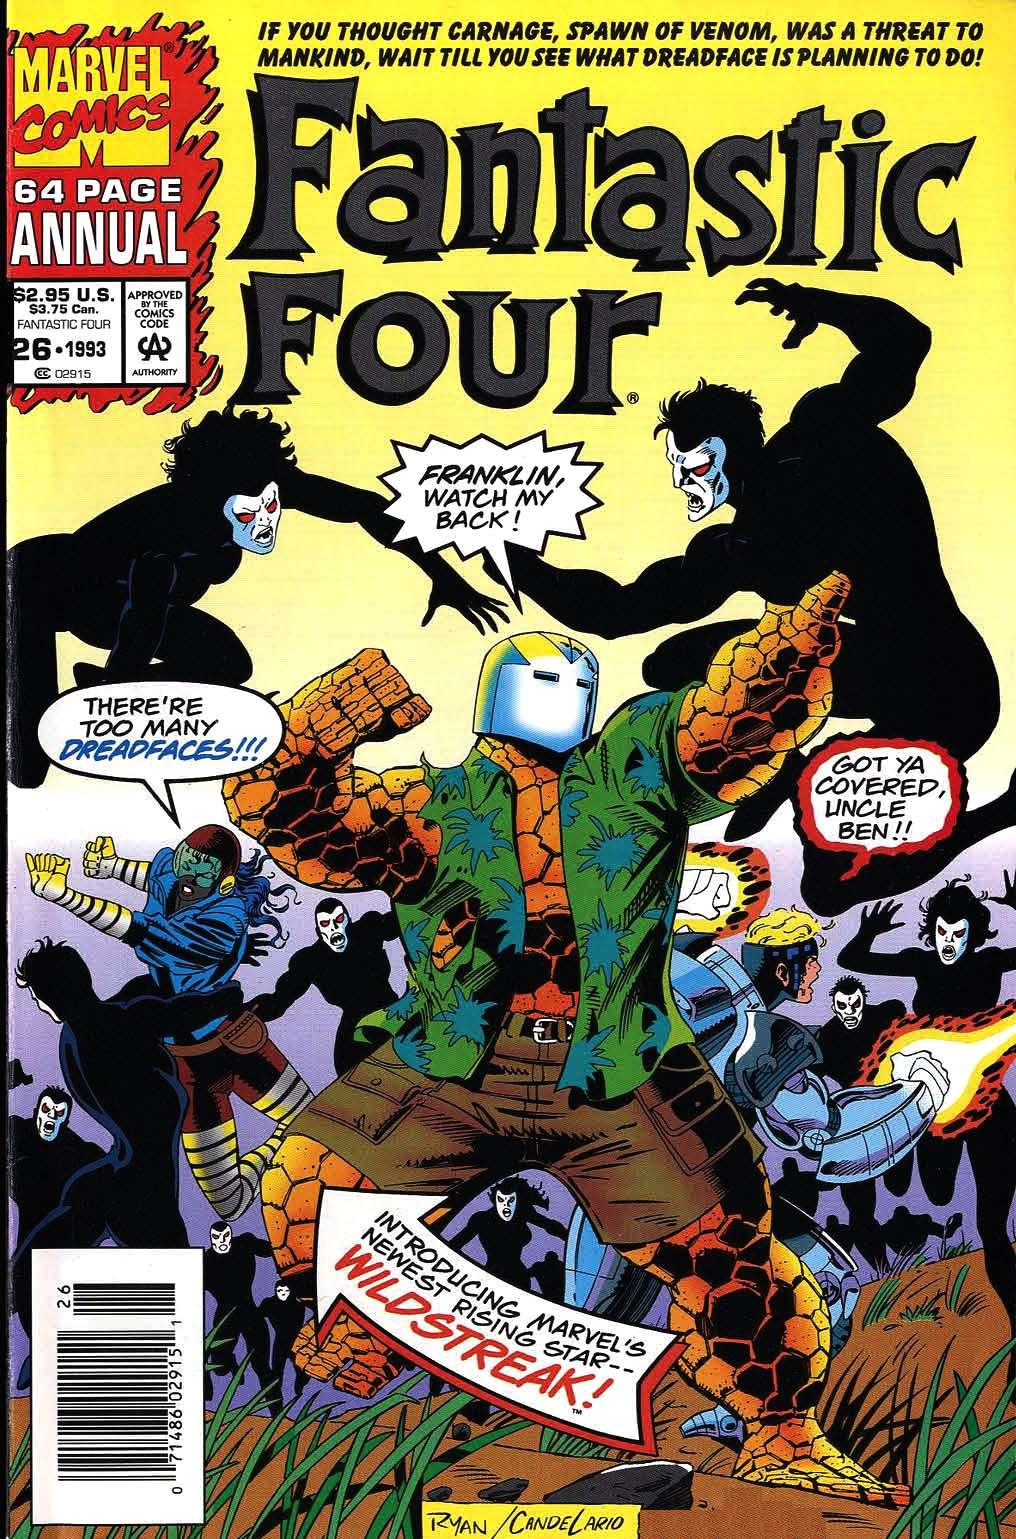 Fantastic Four Vol. 1 #26